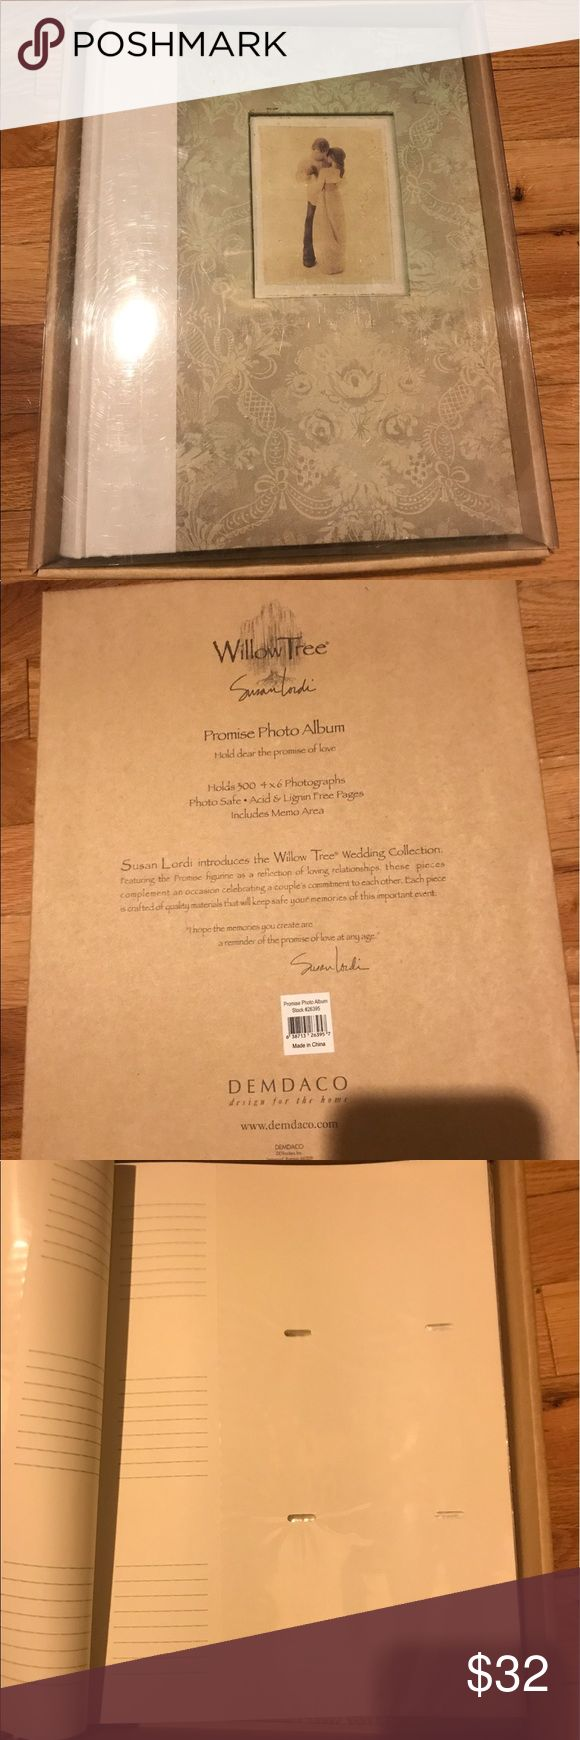 Retired Willow Tree Promise Photo Album Brand new, never used. willow tree Other